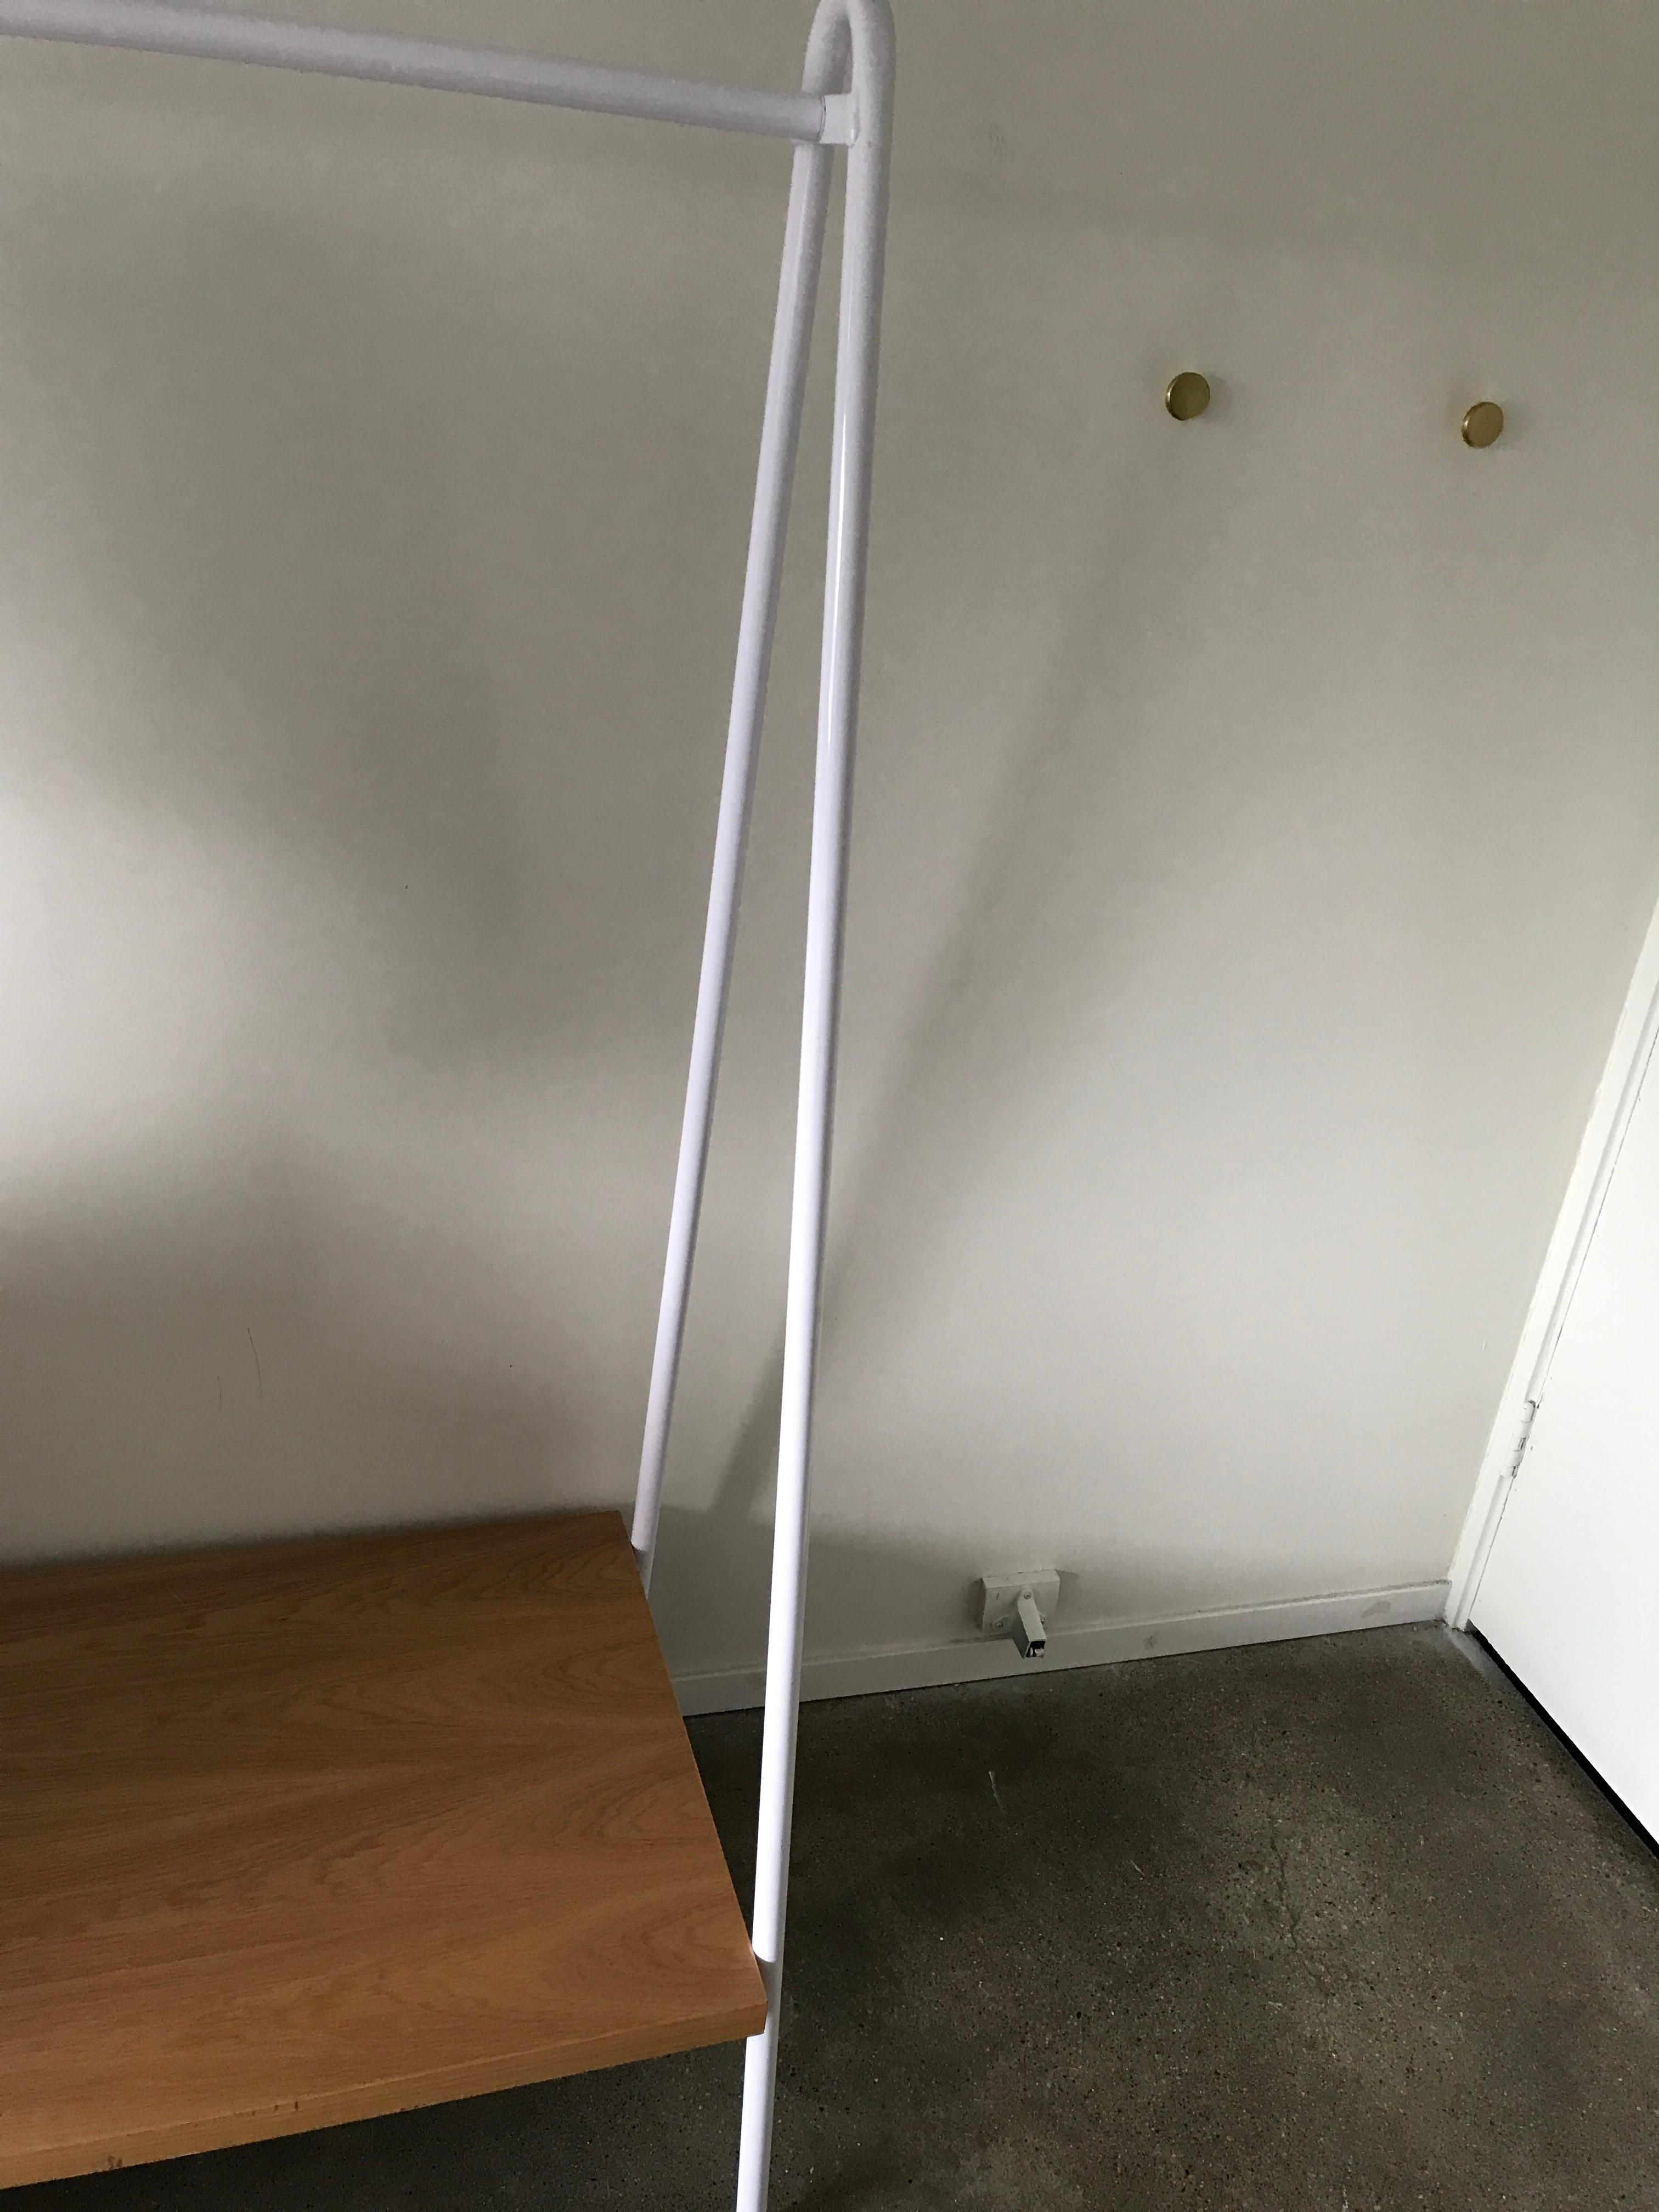 These poles are the closet